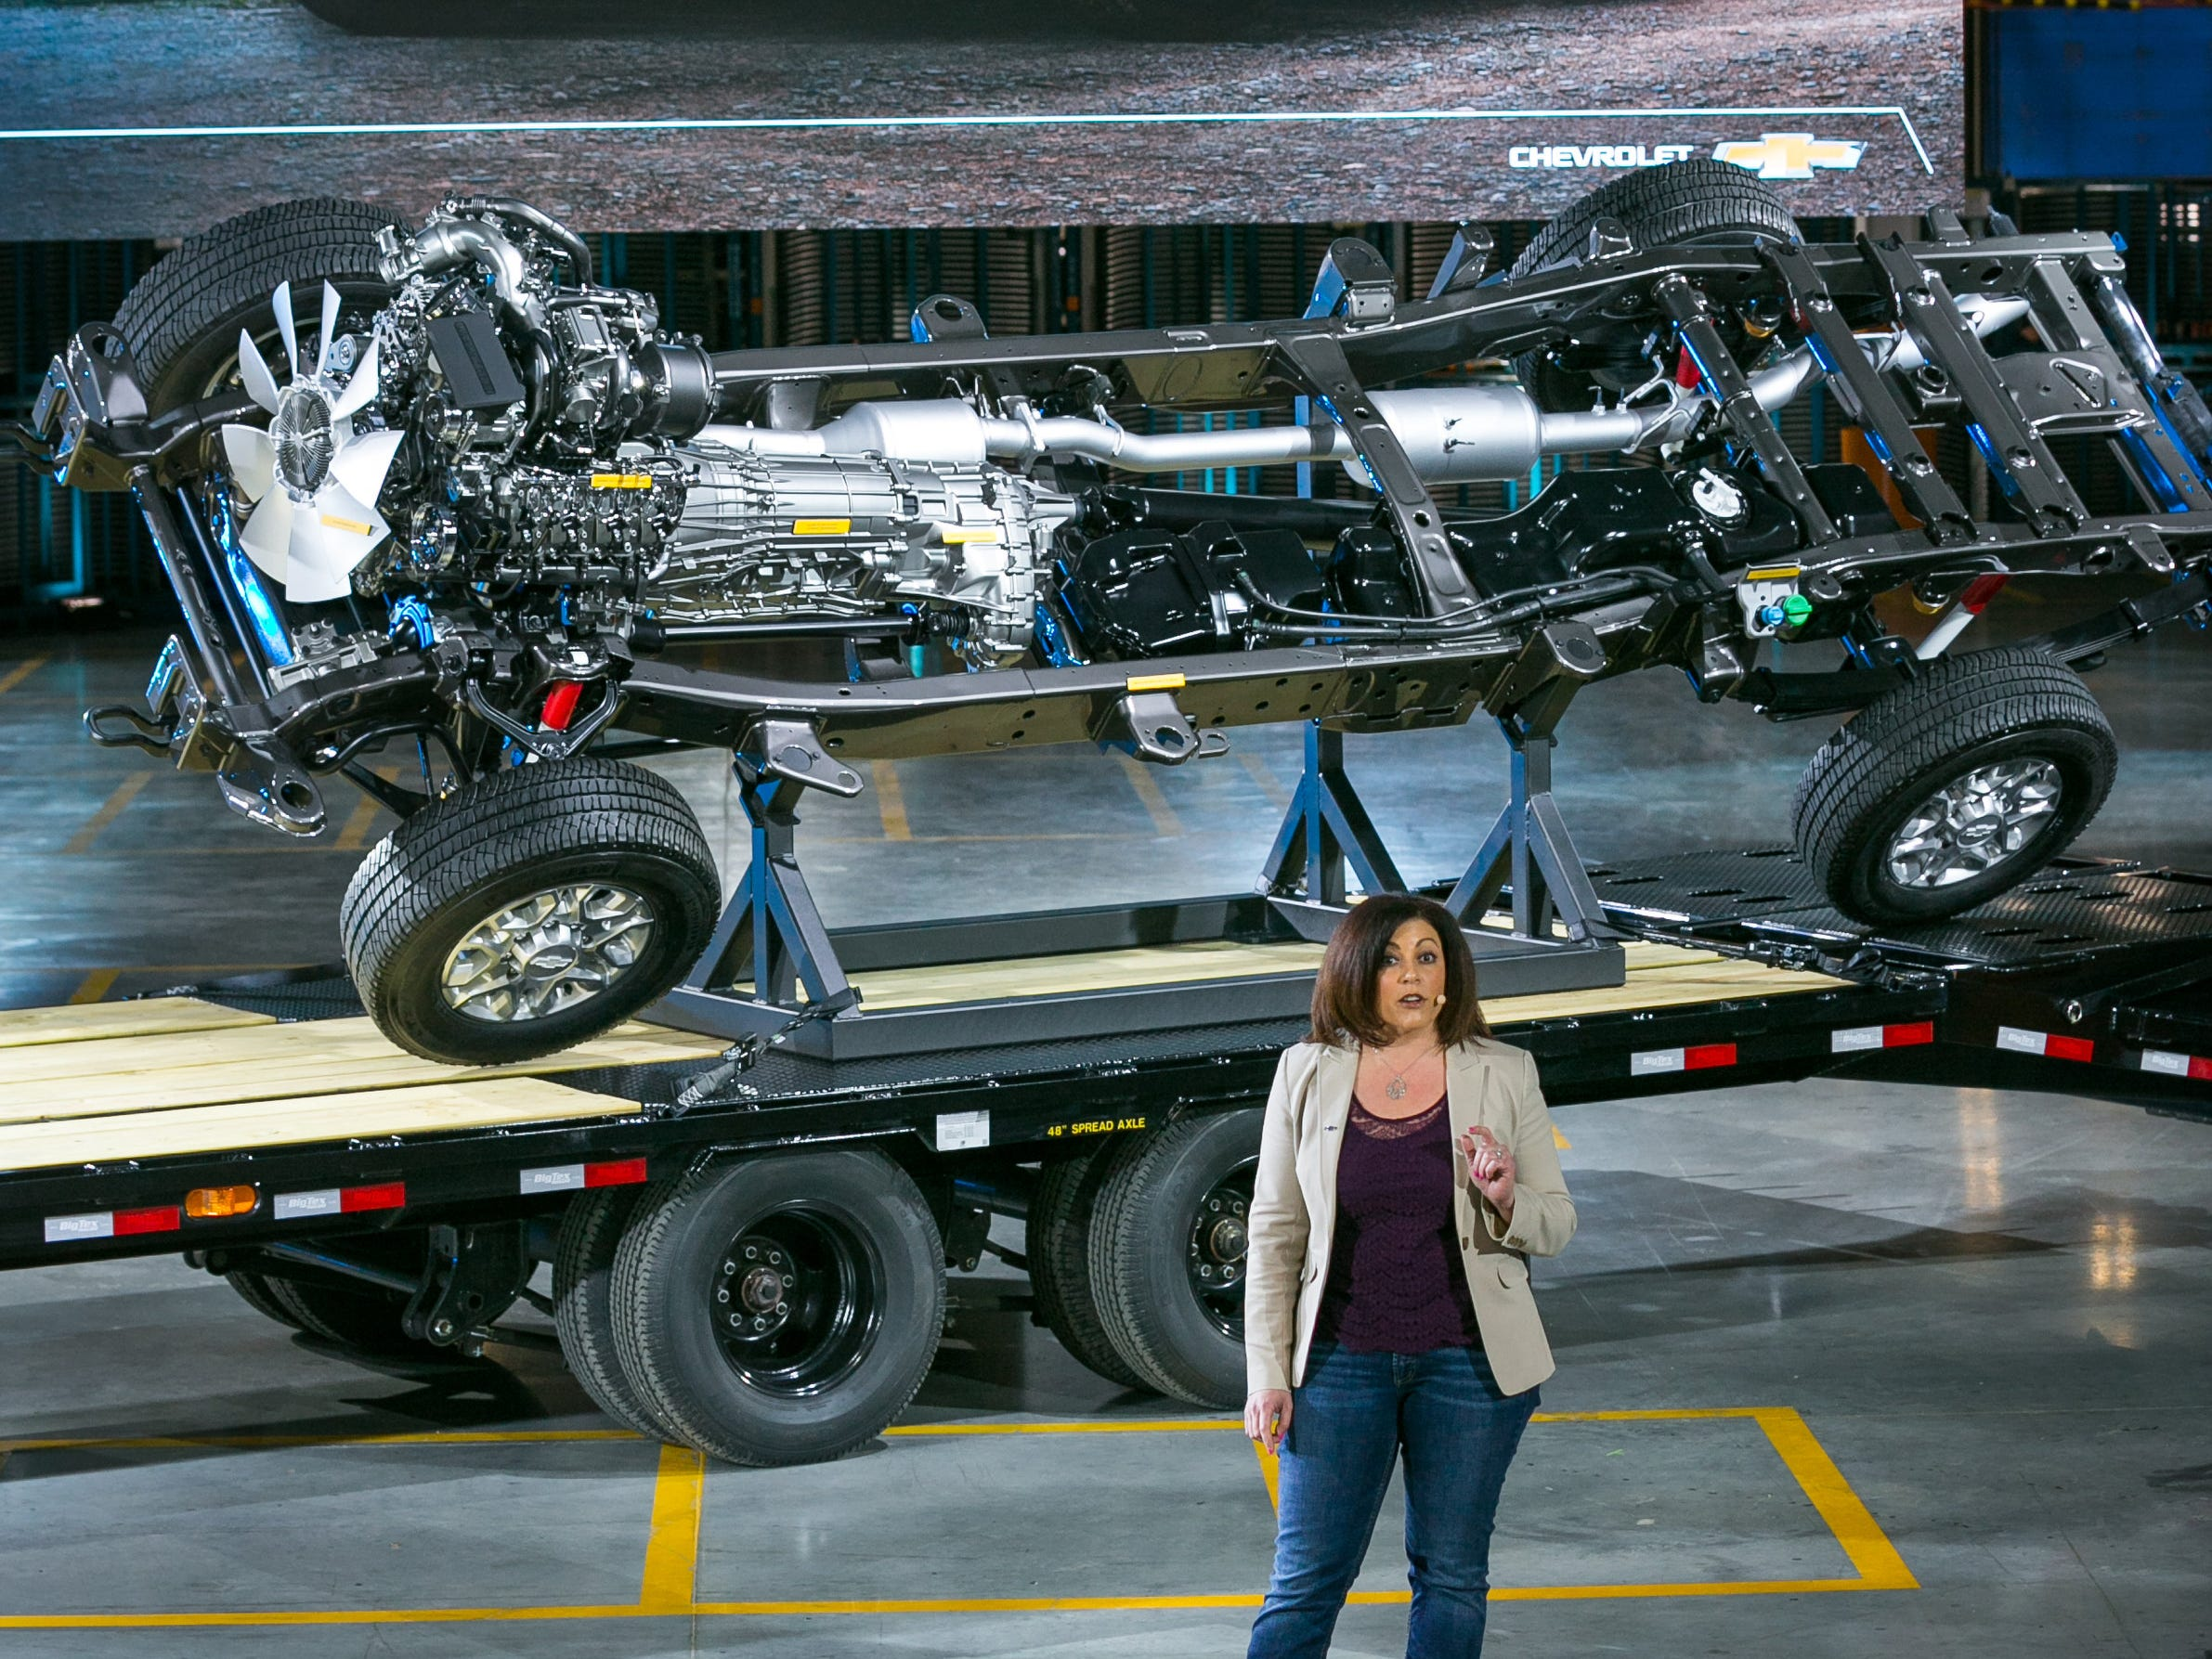 Chevrolet Silverado HD Lead Engineer Jaclyn McQuaid shows off the chassis of the 2020 Chevrolet Silverado Heavy Duty Tuesday, February 5, 2019 at General Motors Flint Assembly, where the trucks will be built in Flint, Michigan. The longer, wider and taller Silverado HD features a new 6.6L V-8 gas engine with direct injection mated to a six-speed automatic transmission.